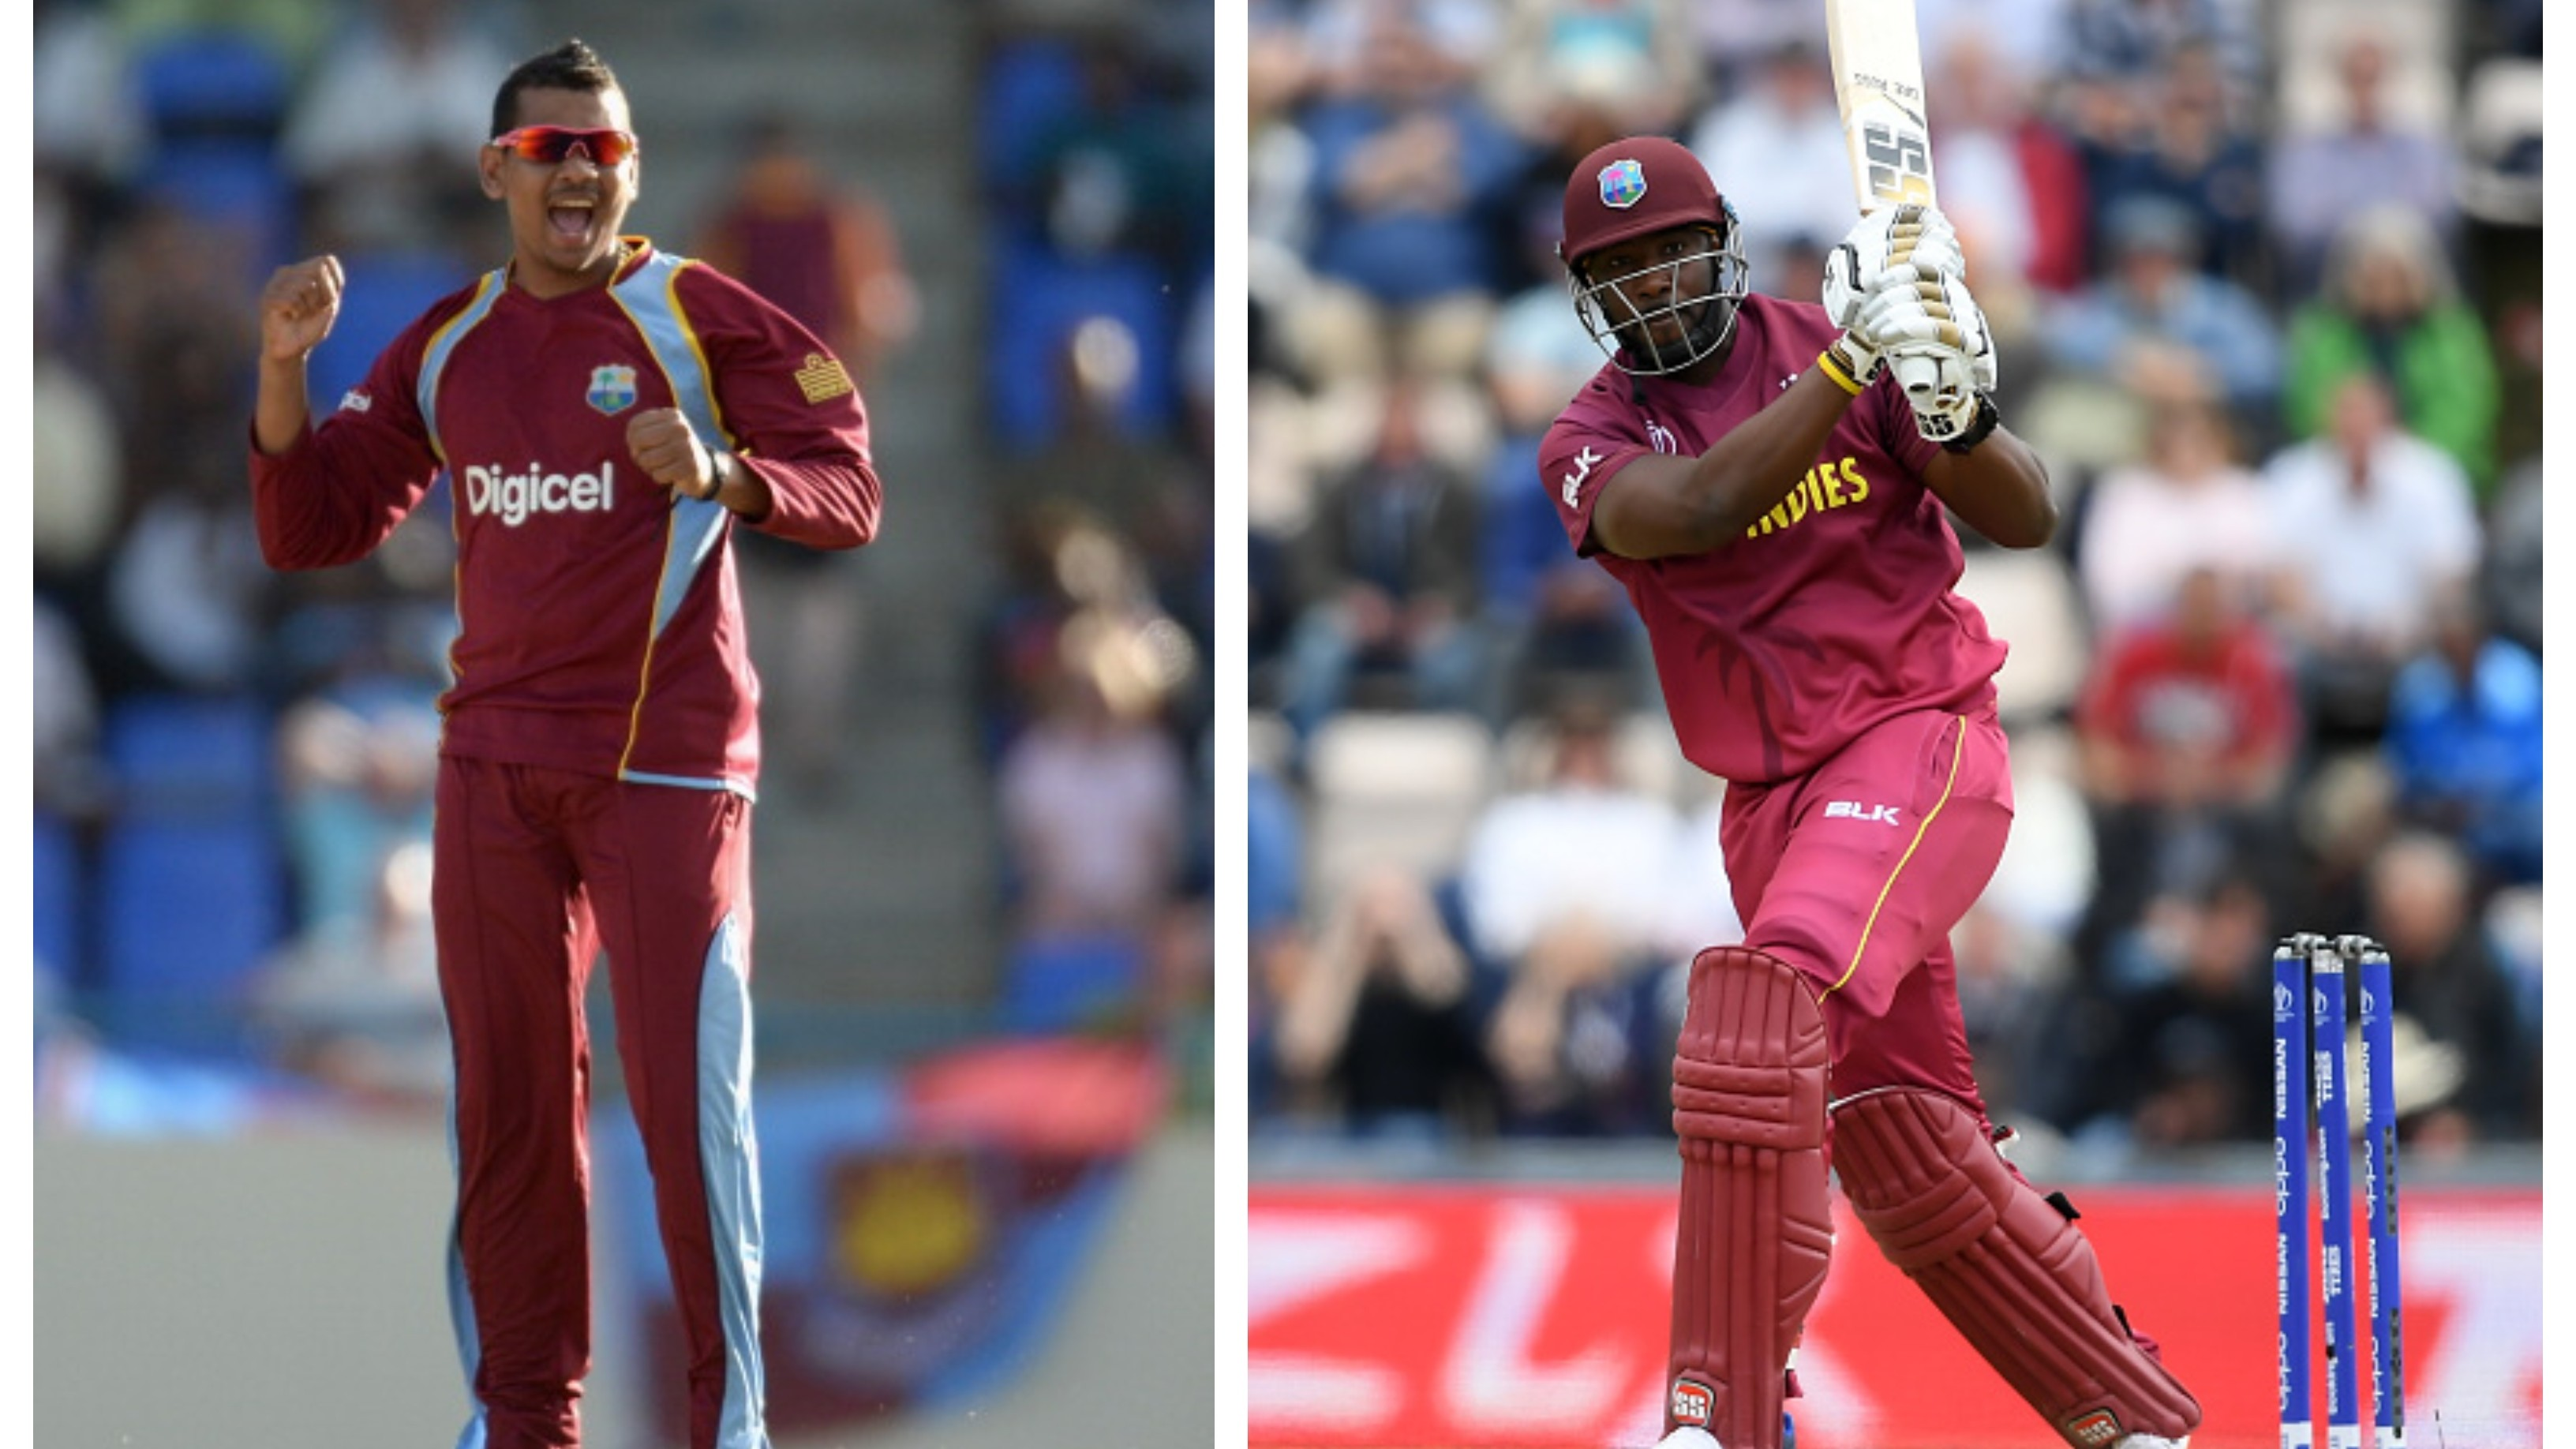 T20WC 2020: CWI states that Russell, Narine integral to the team's T20 World Cup plans